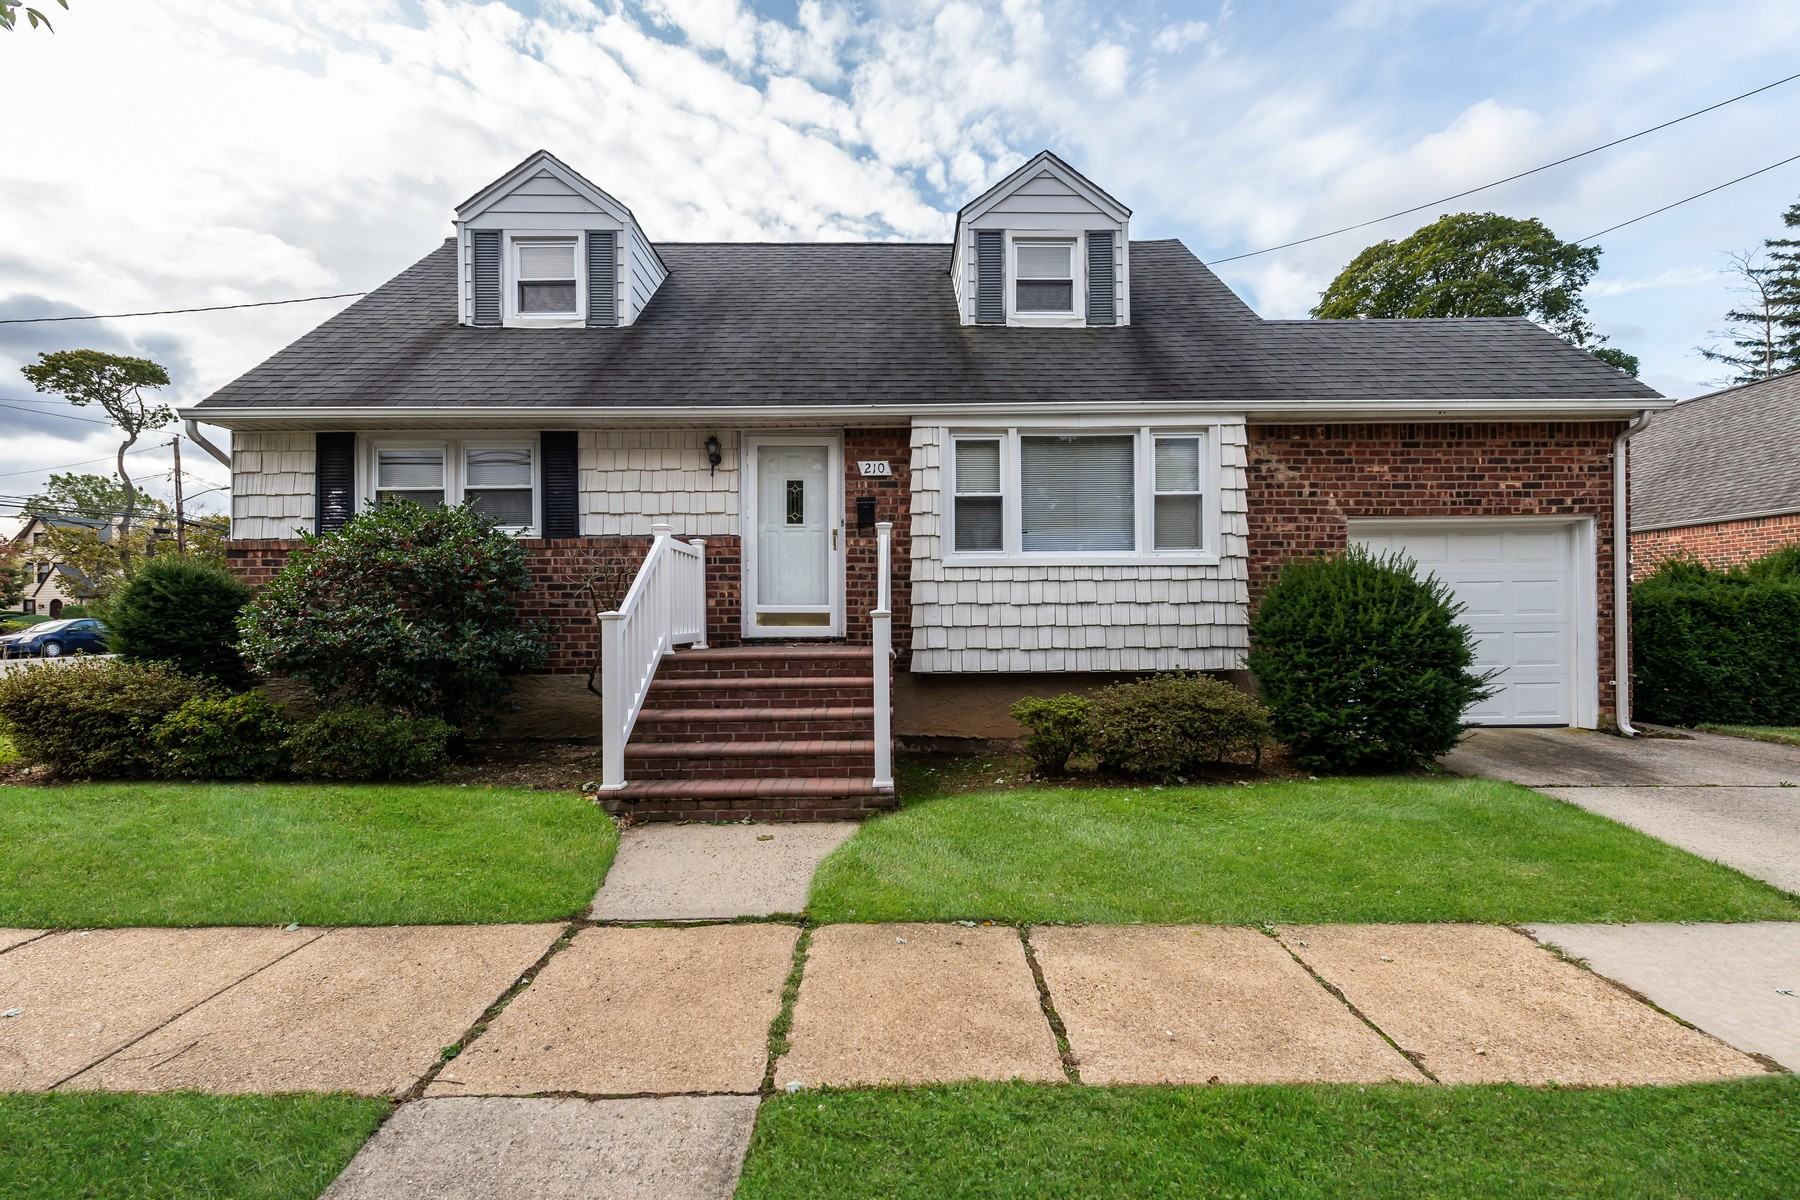 Single Family Homes for Sale at W. Hempstead 210 William St West Hempstead, New York 11552 United States